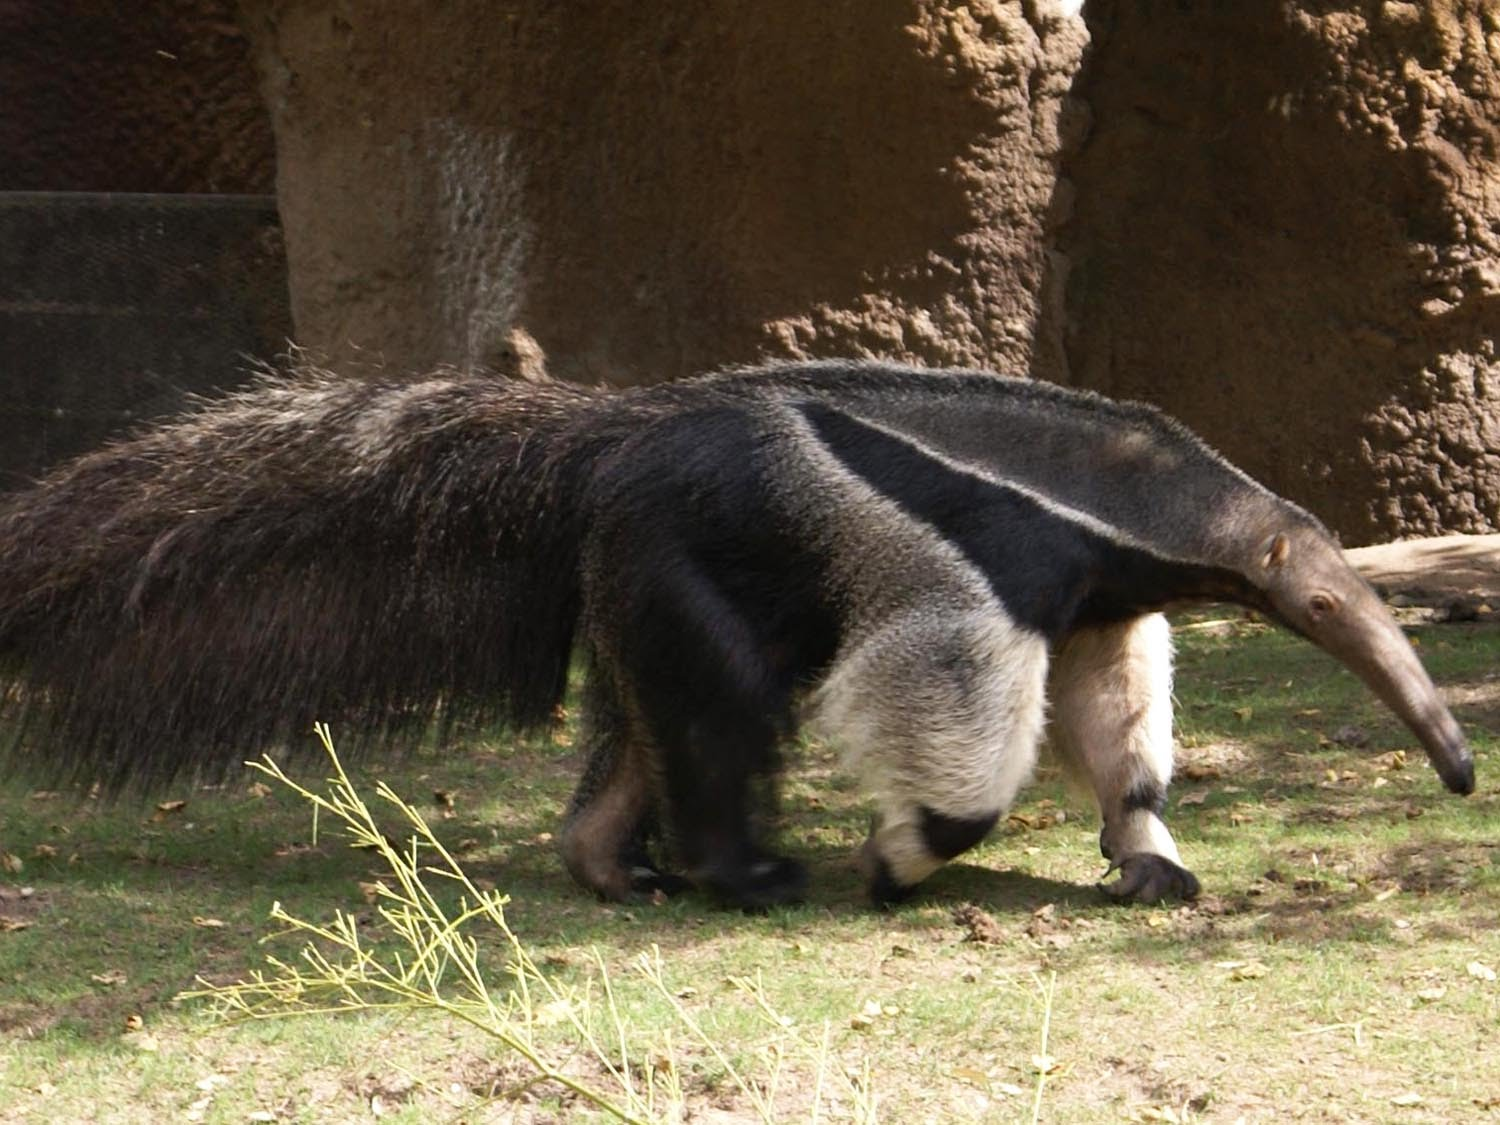 Giant Anteater | Animal Planet's The Most Extreme Wiki ...